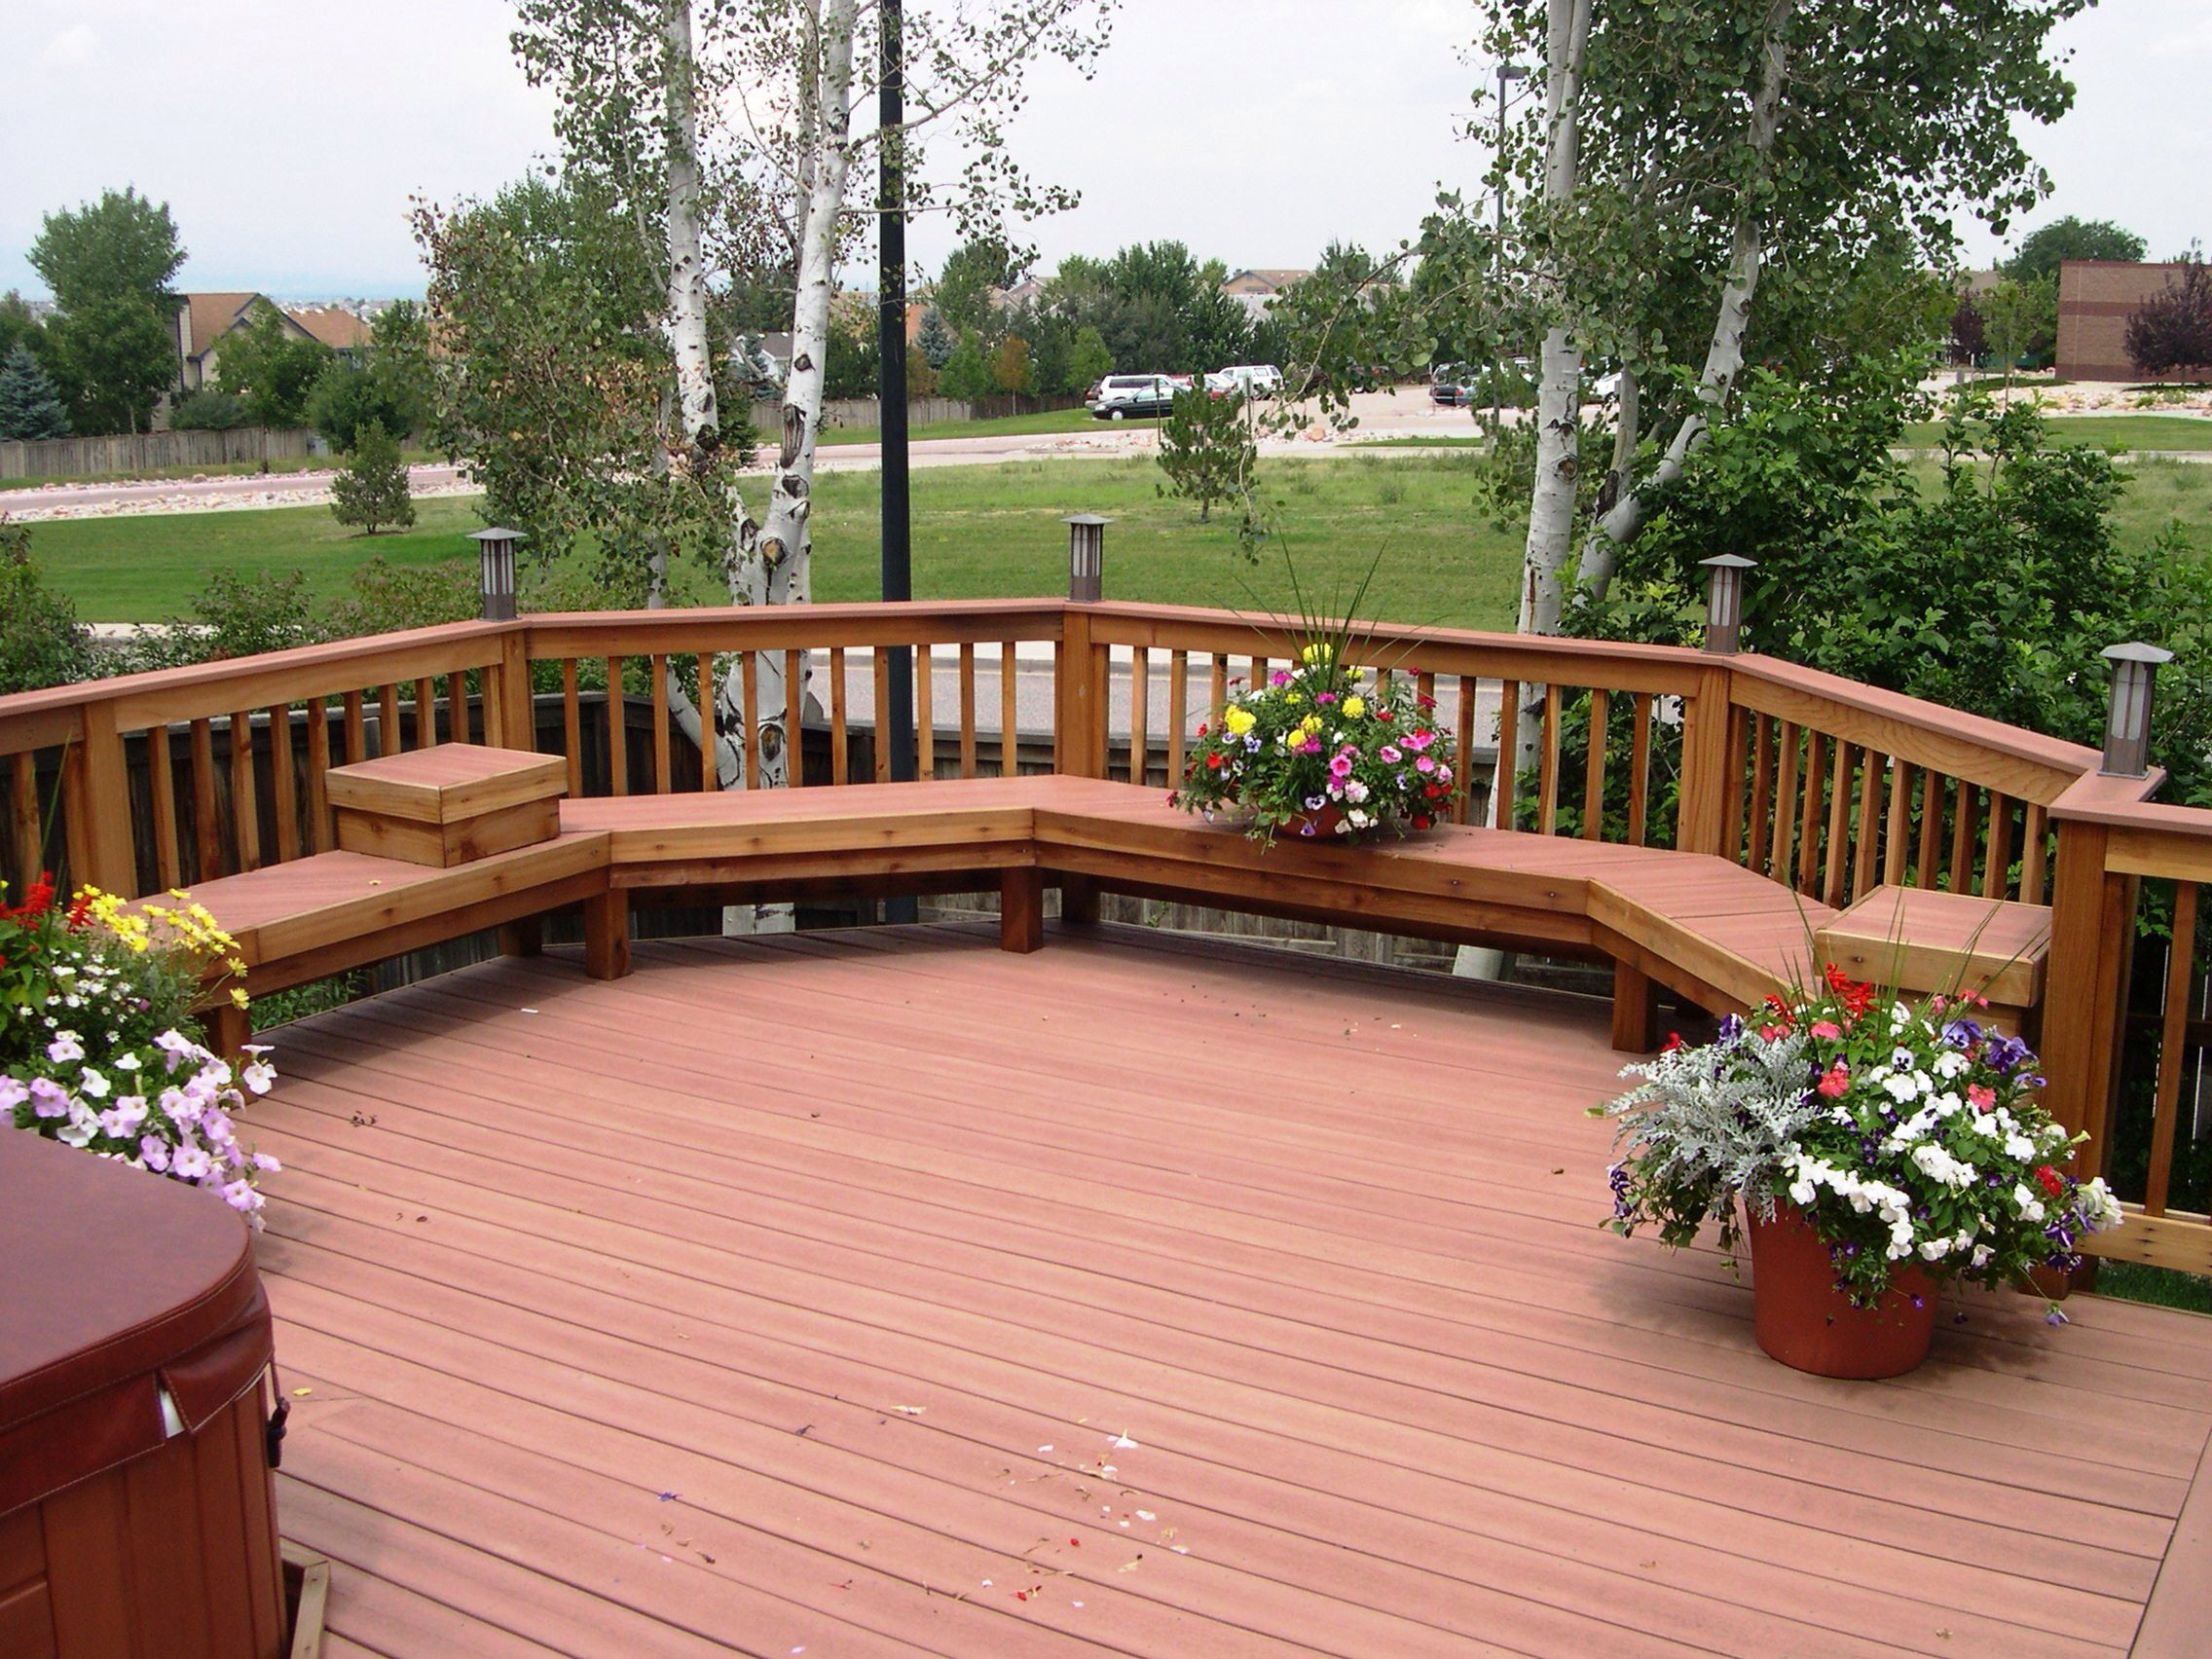 of ideas gorgeous deck patio flooring modern stamped backyard landscaping concrete and